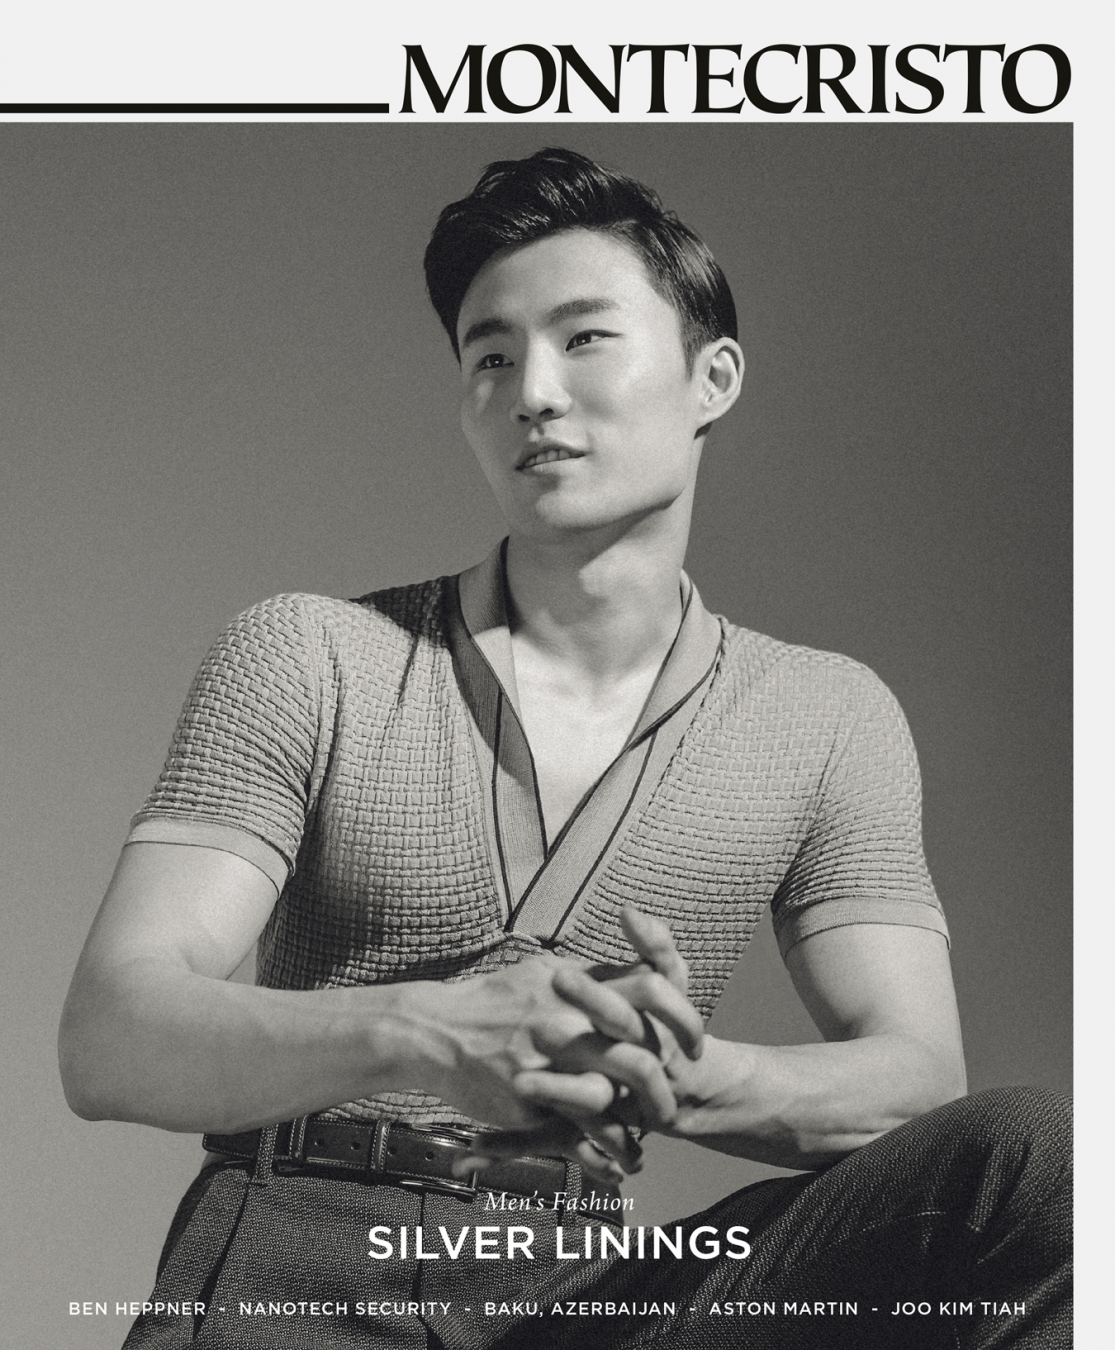 MONTECRISTO Spring 2015 Issue Featuring Men's Fashion Model Sang